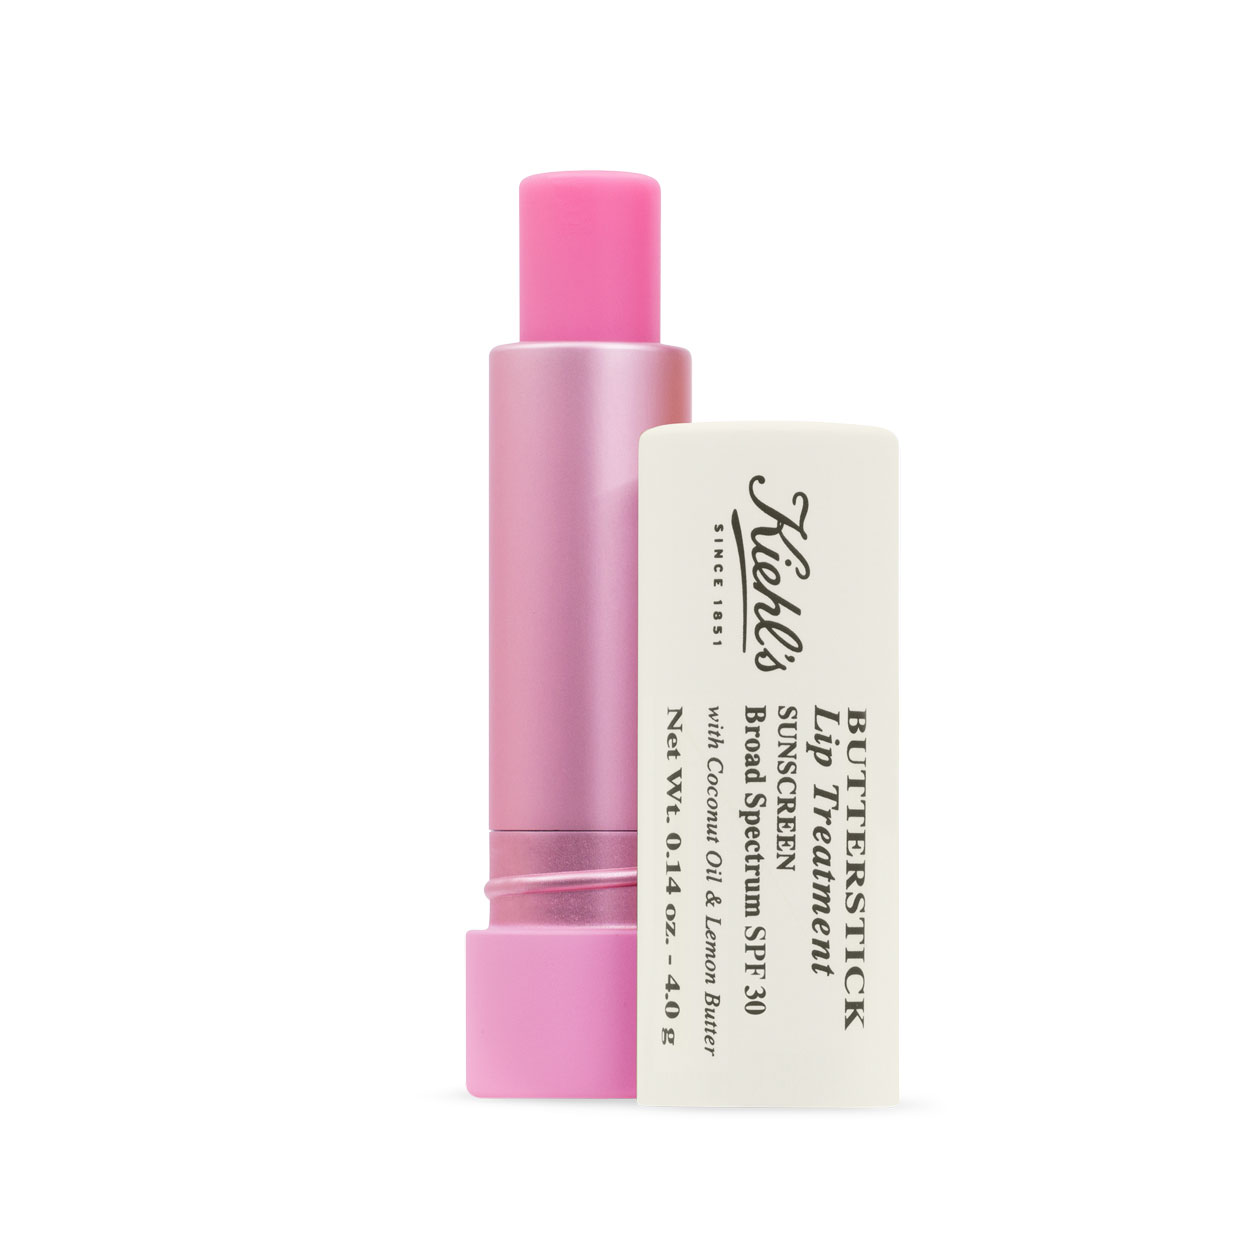 tinted lip balm with SPF protection